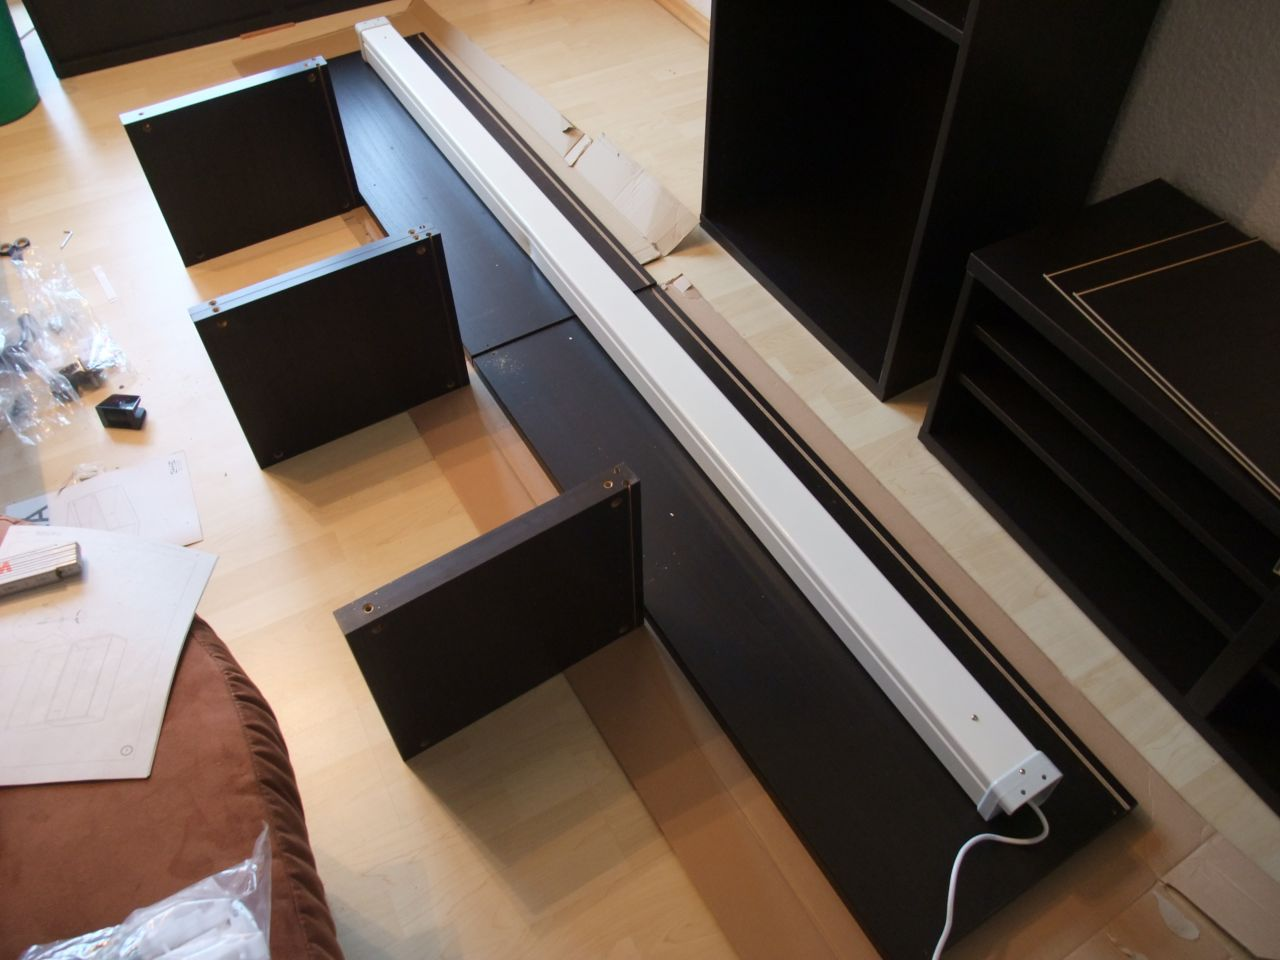 kabel verstecken ikea swalif. Black Bedroom Furniture Sets. Home Design Ideas